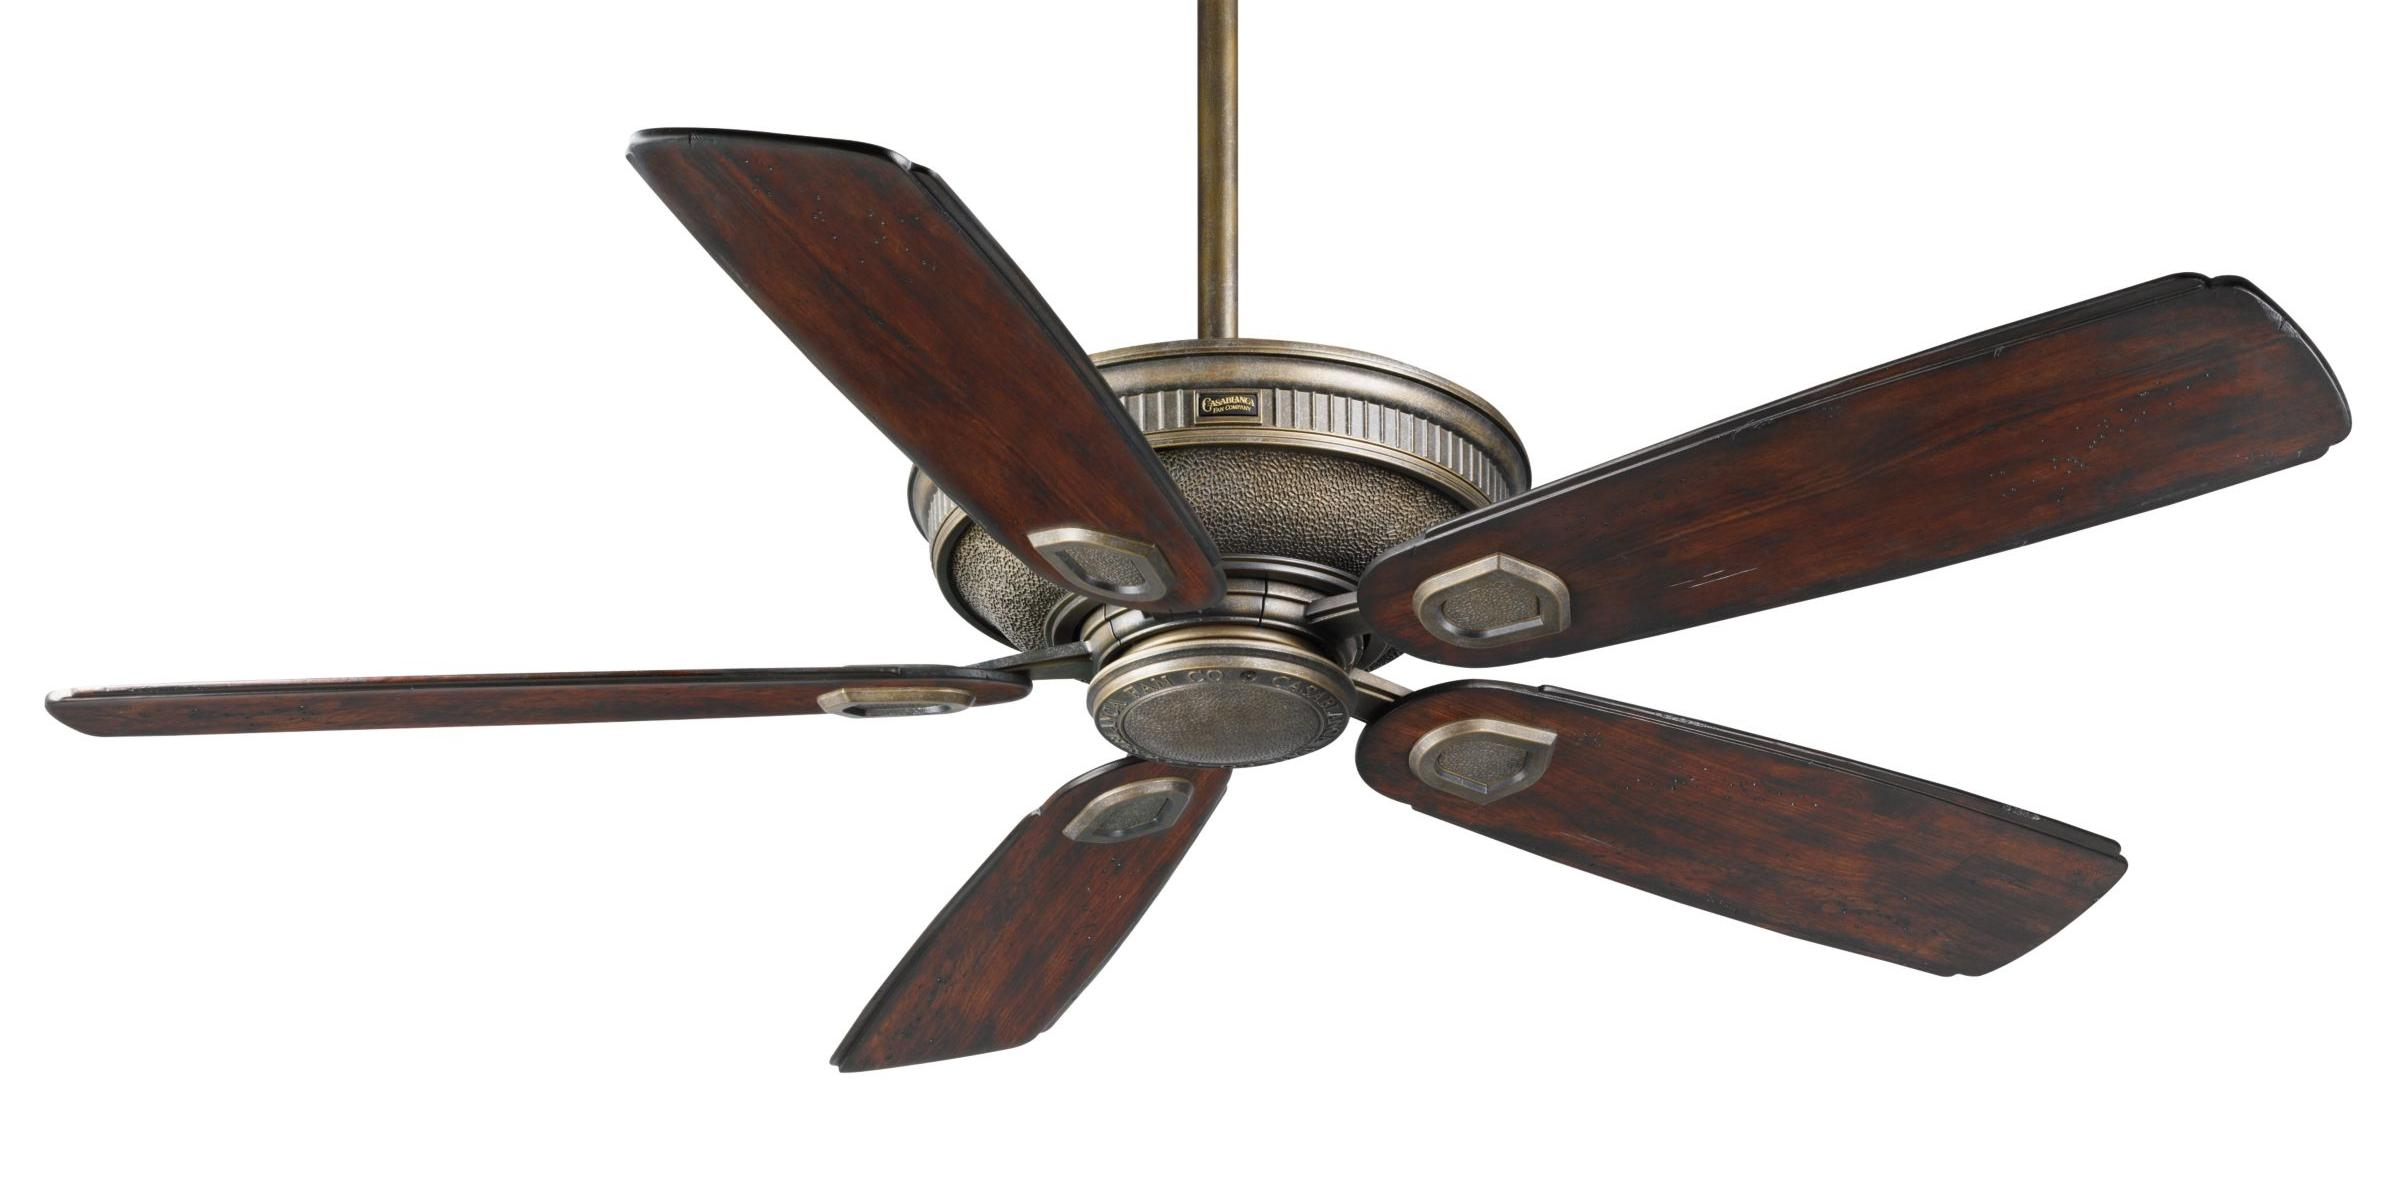 wonderful Heritage 2015 casablanca ceiling fans CA 59527 in Aged Bronze for ceiling decor ideas